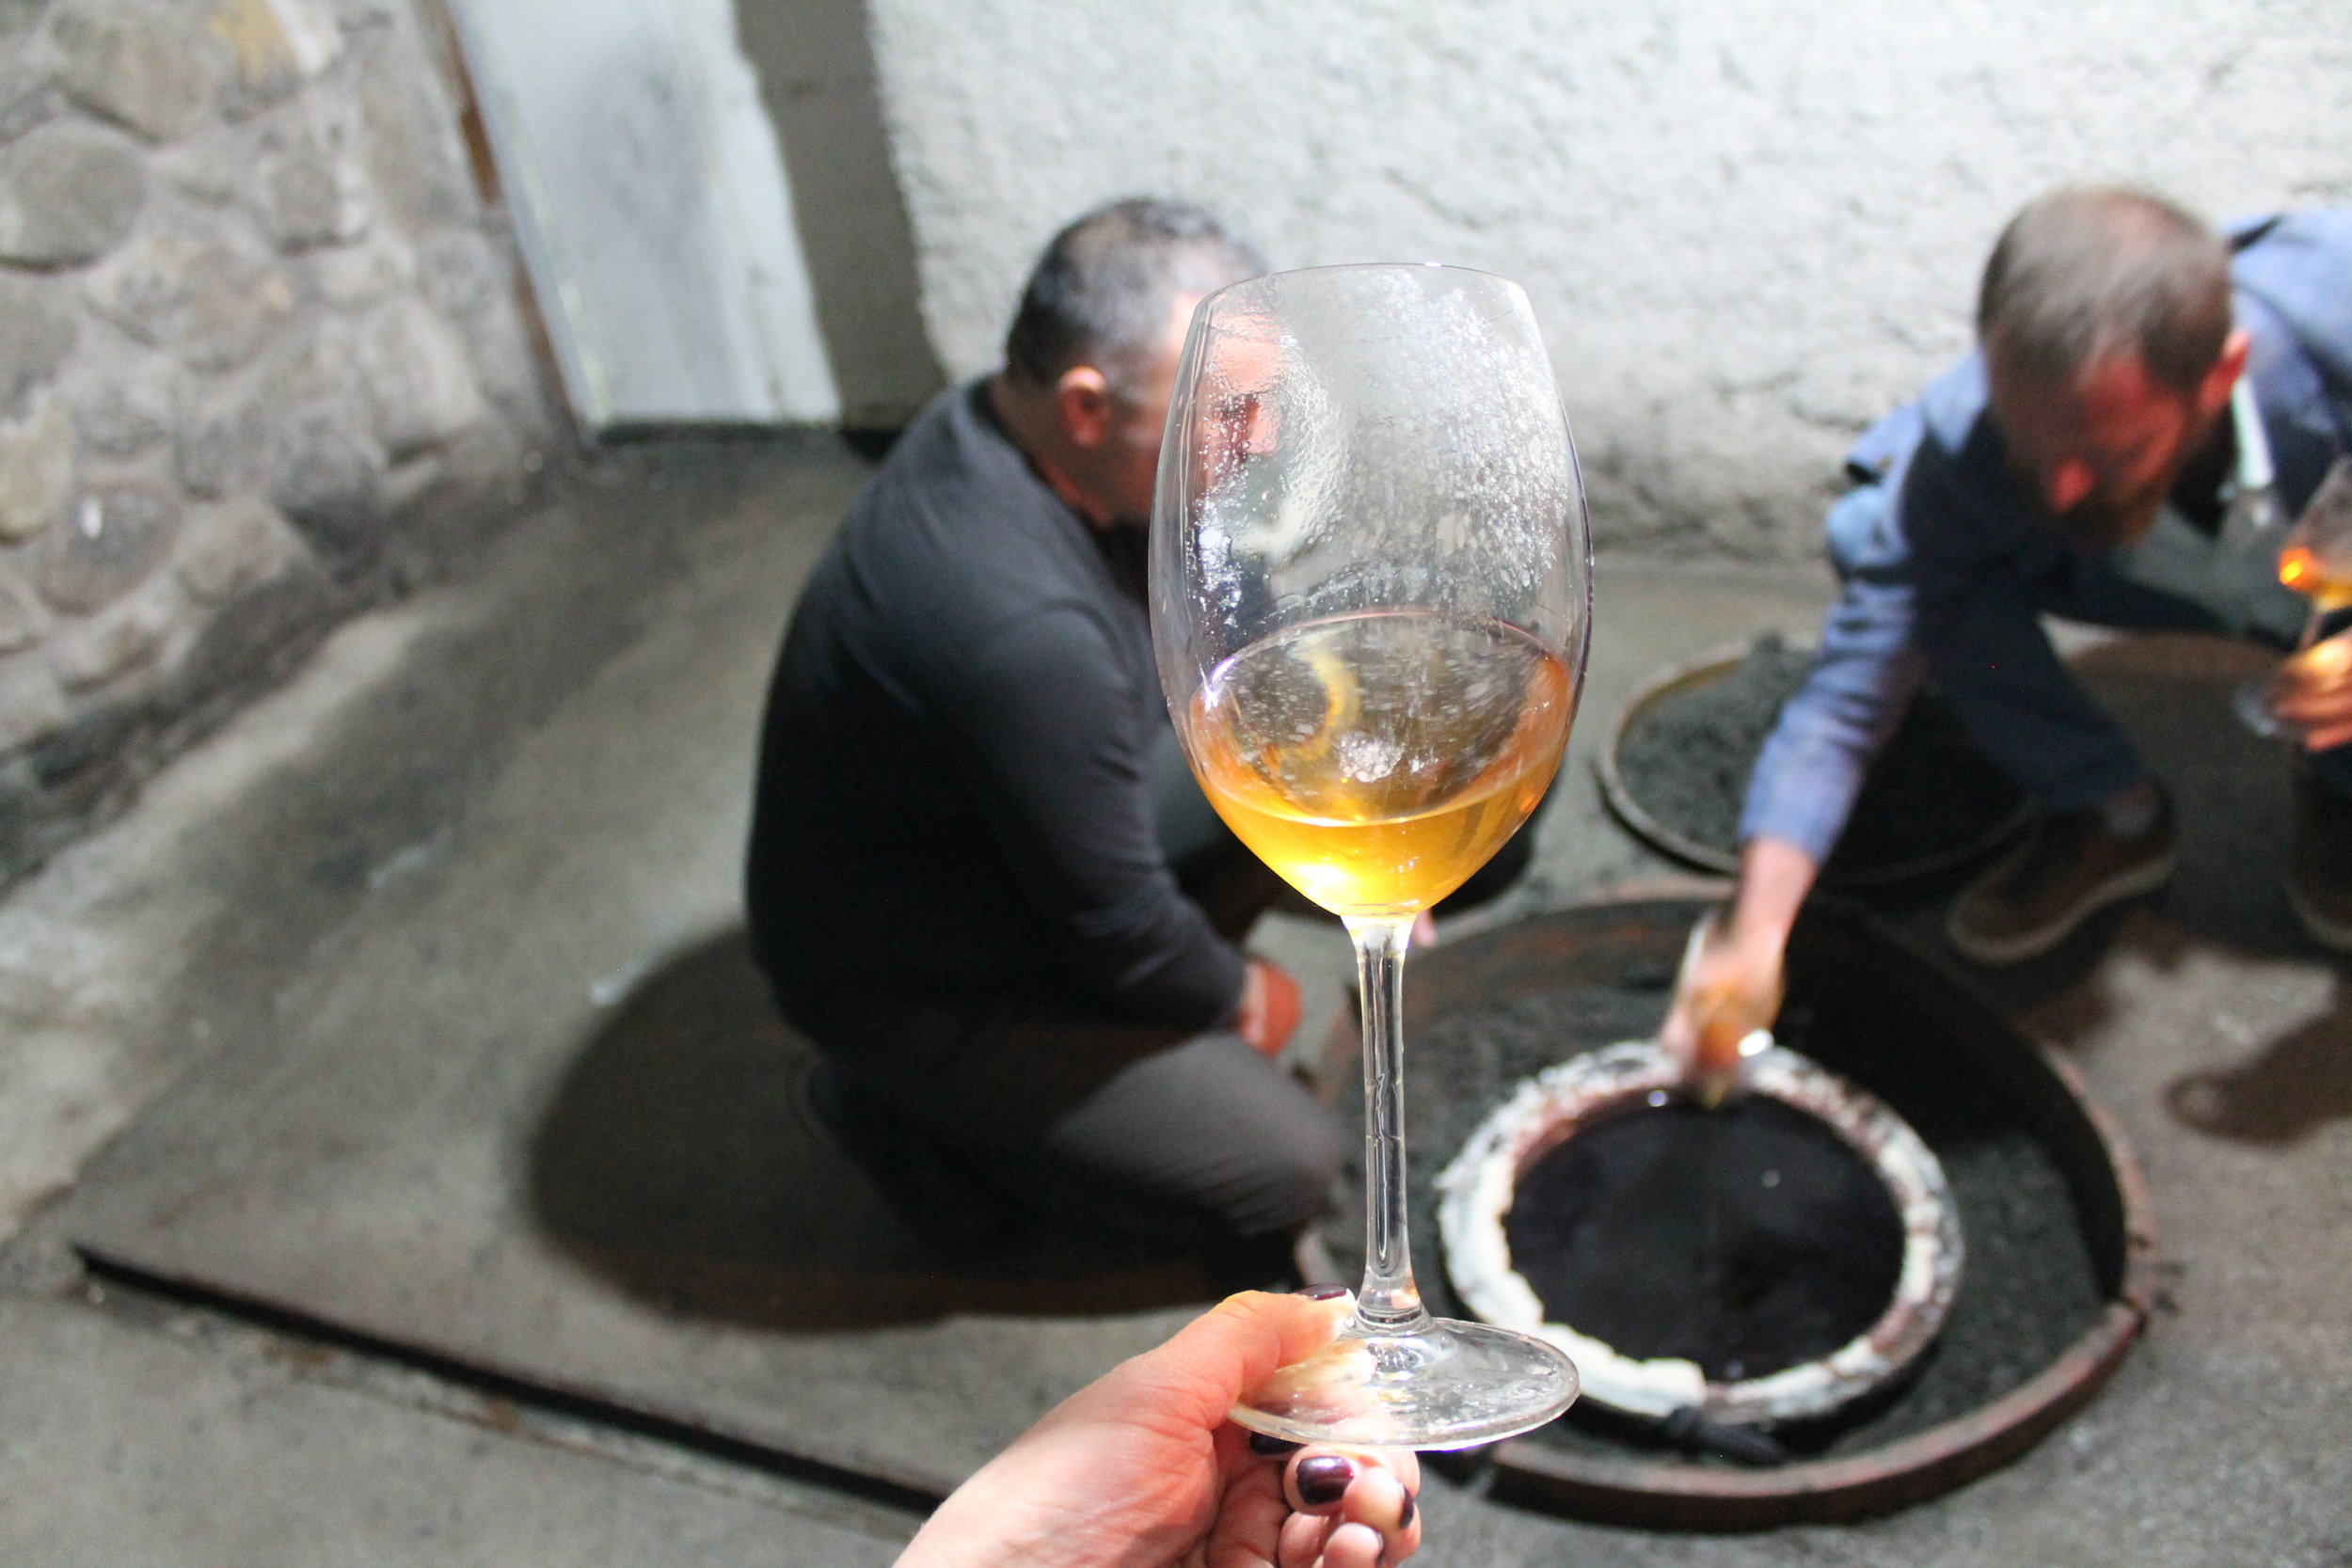 Drinking amber wine from qvevri at Château Bruale.